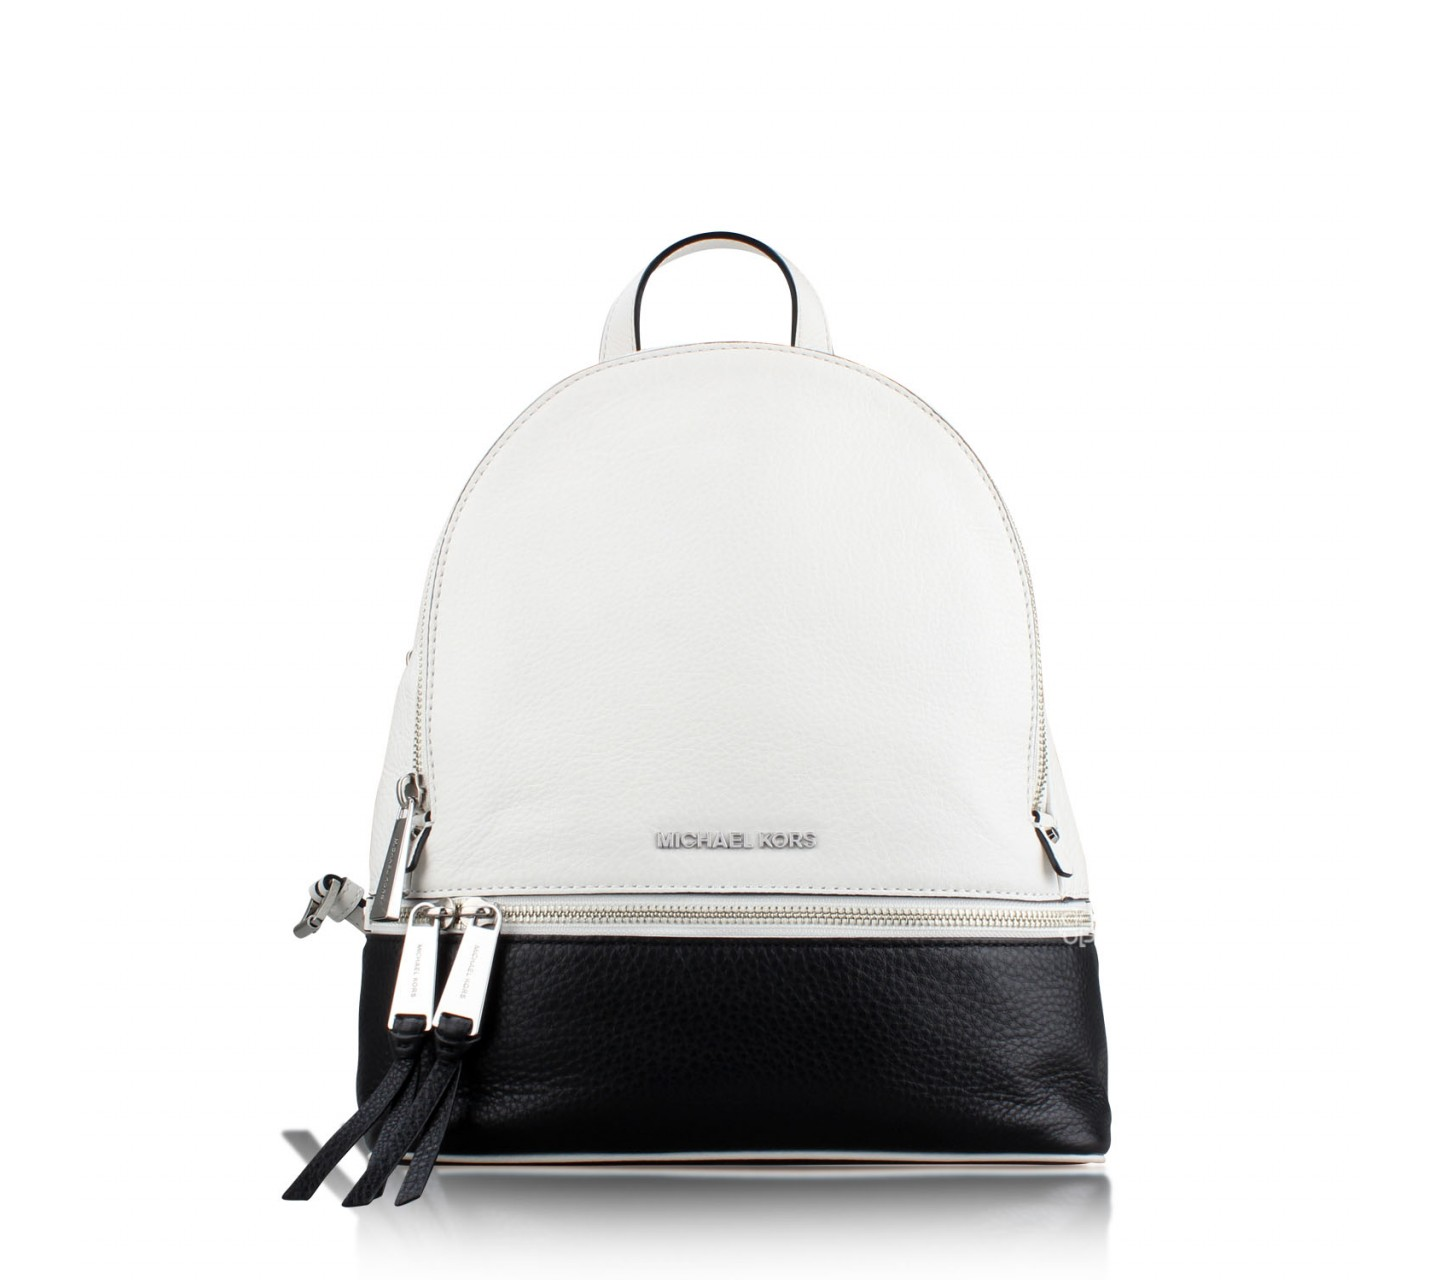 8836e380657357 Buy white backpack michaels > OFF64% Discounted